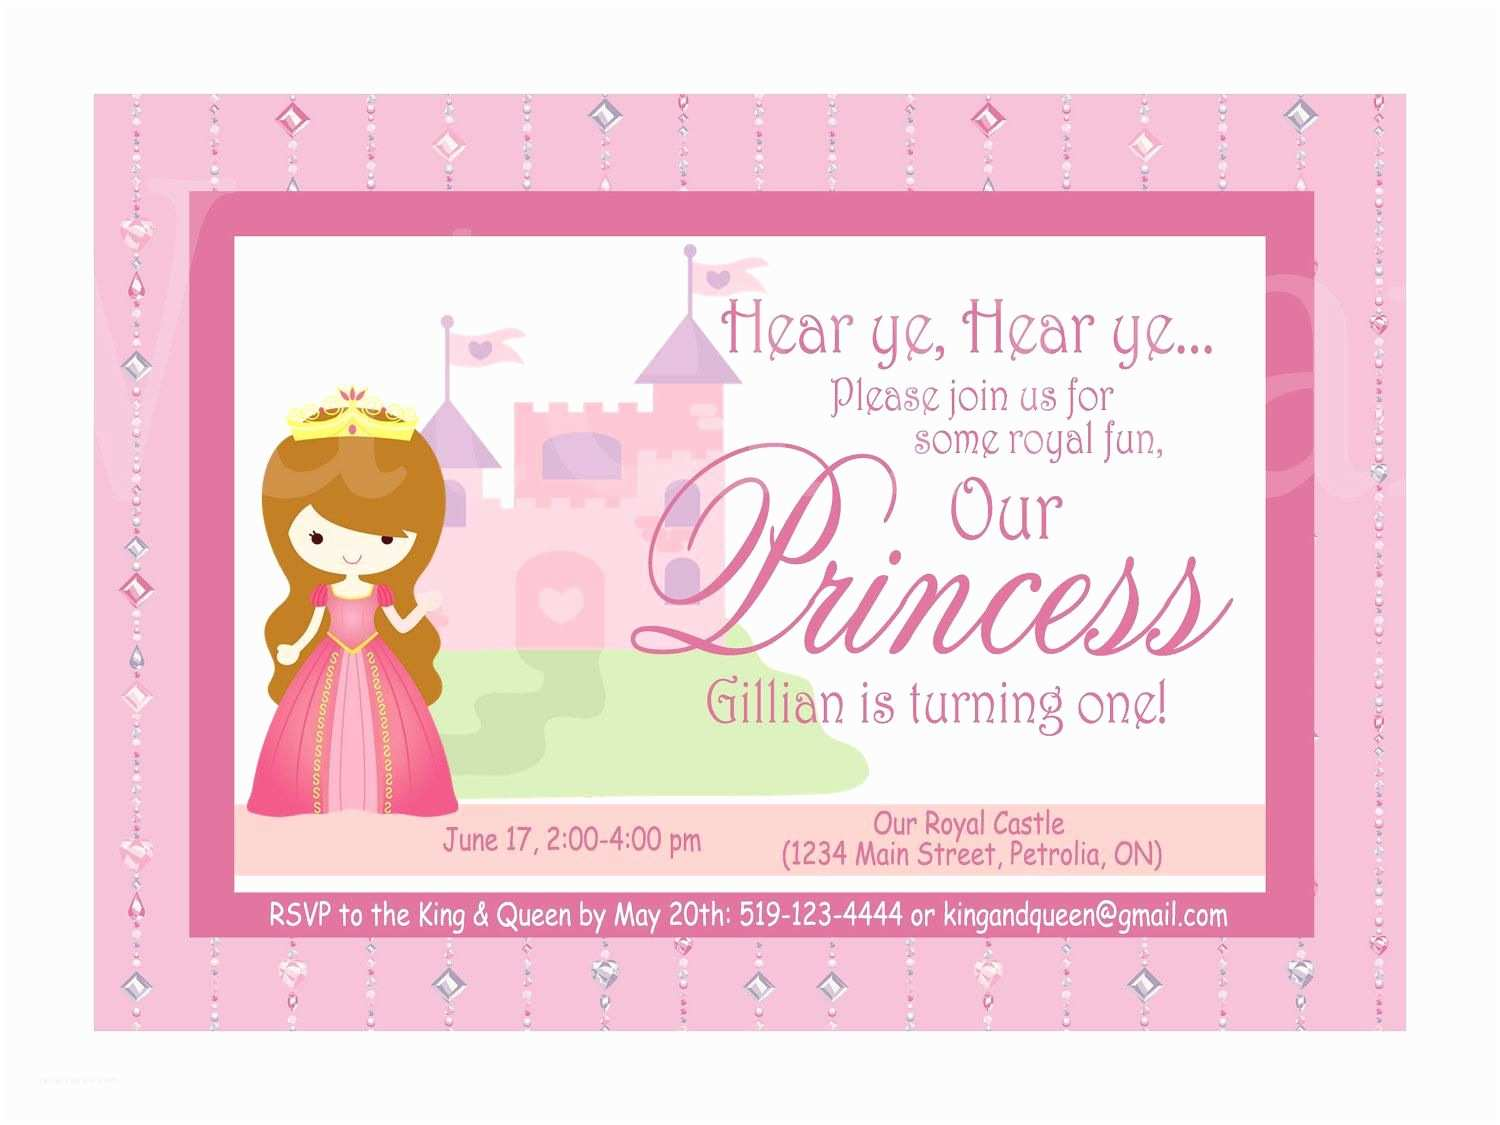 Birthday Party Invitation Text Birthday Invitation Card Birthday Invitation Wording